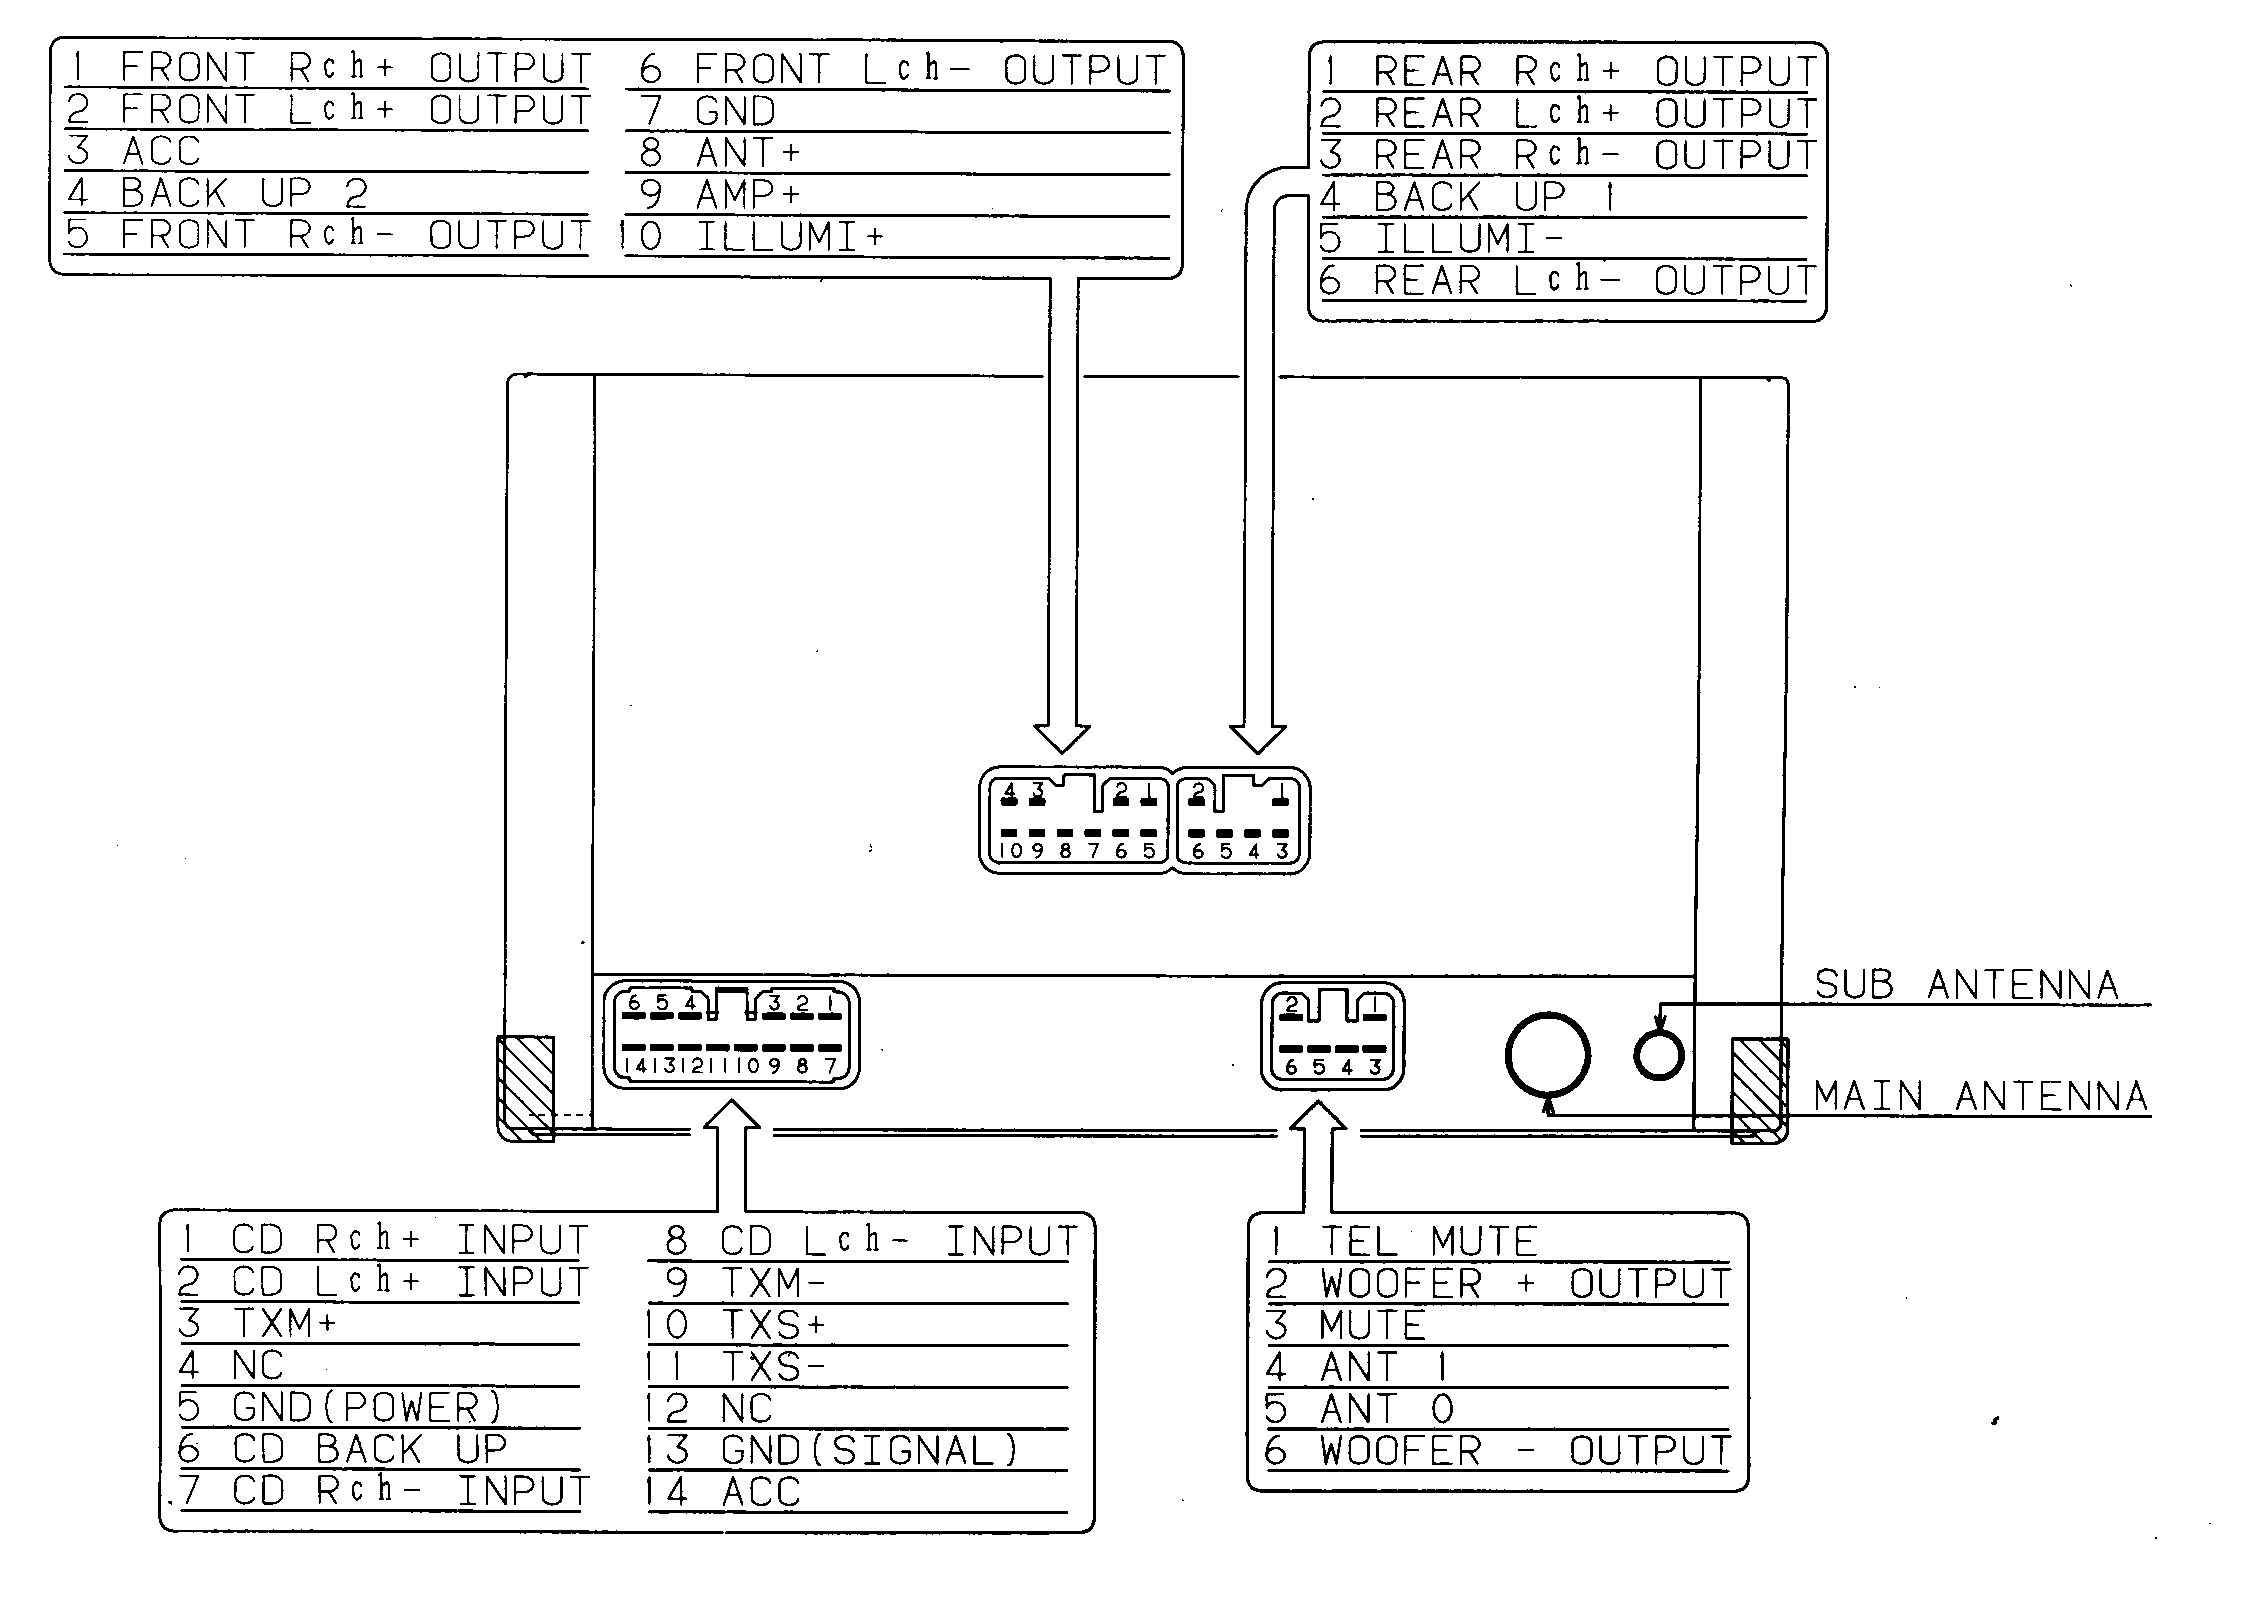 WireHarnessLexus121001 car cd player wiring diagram how to connect car stereo wires golf cart radio wiring diagram at soozxer.org